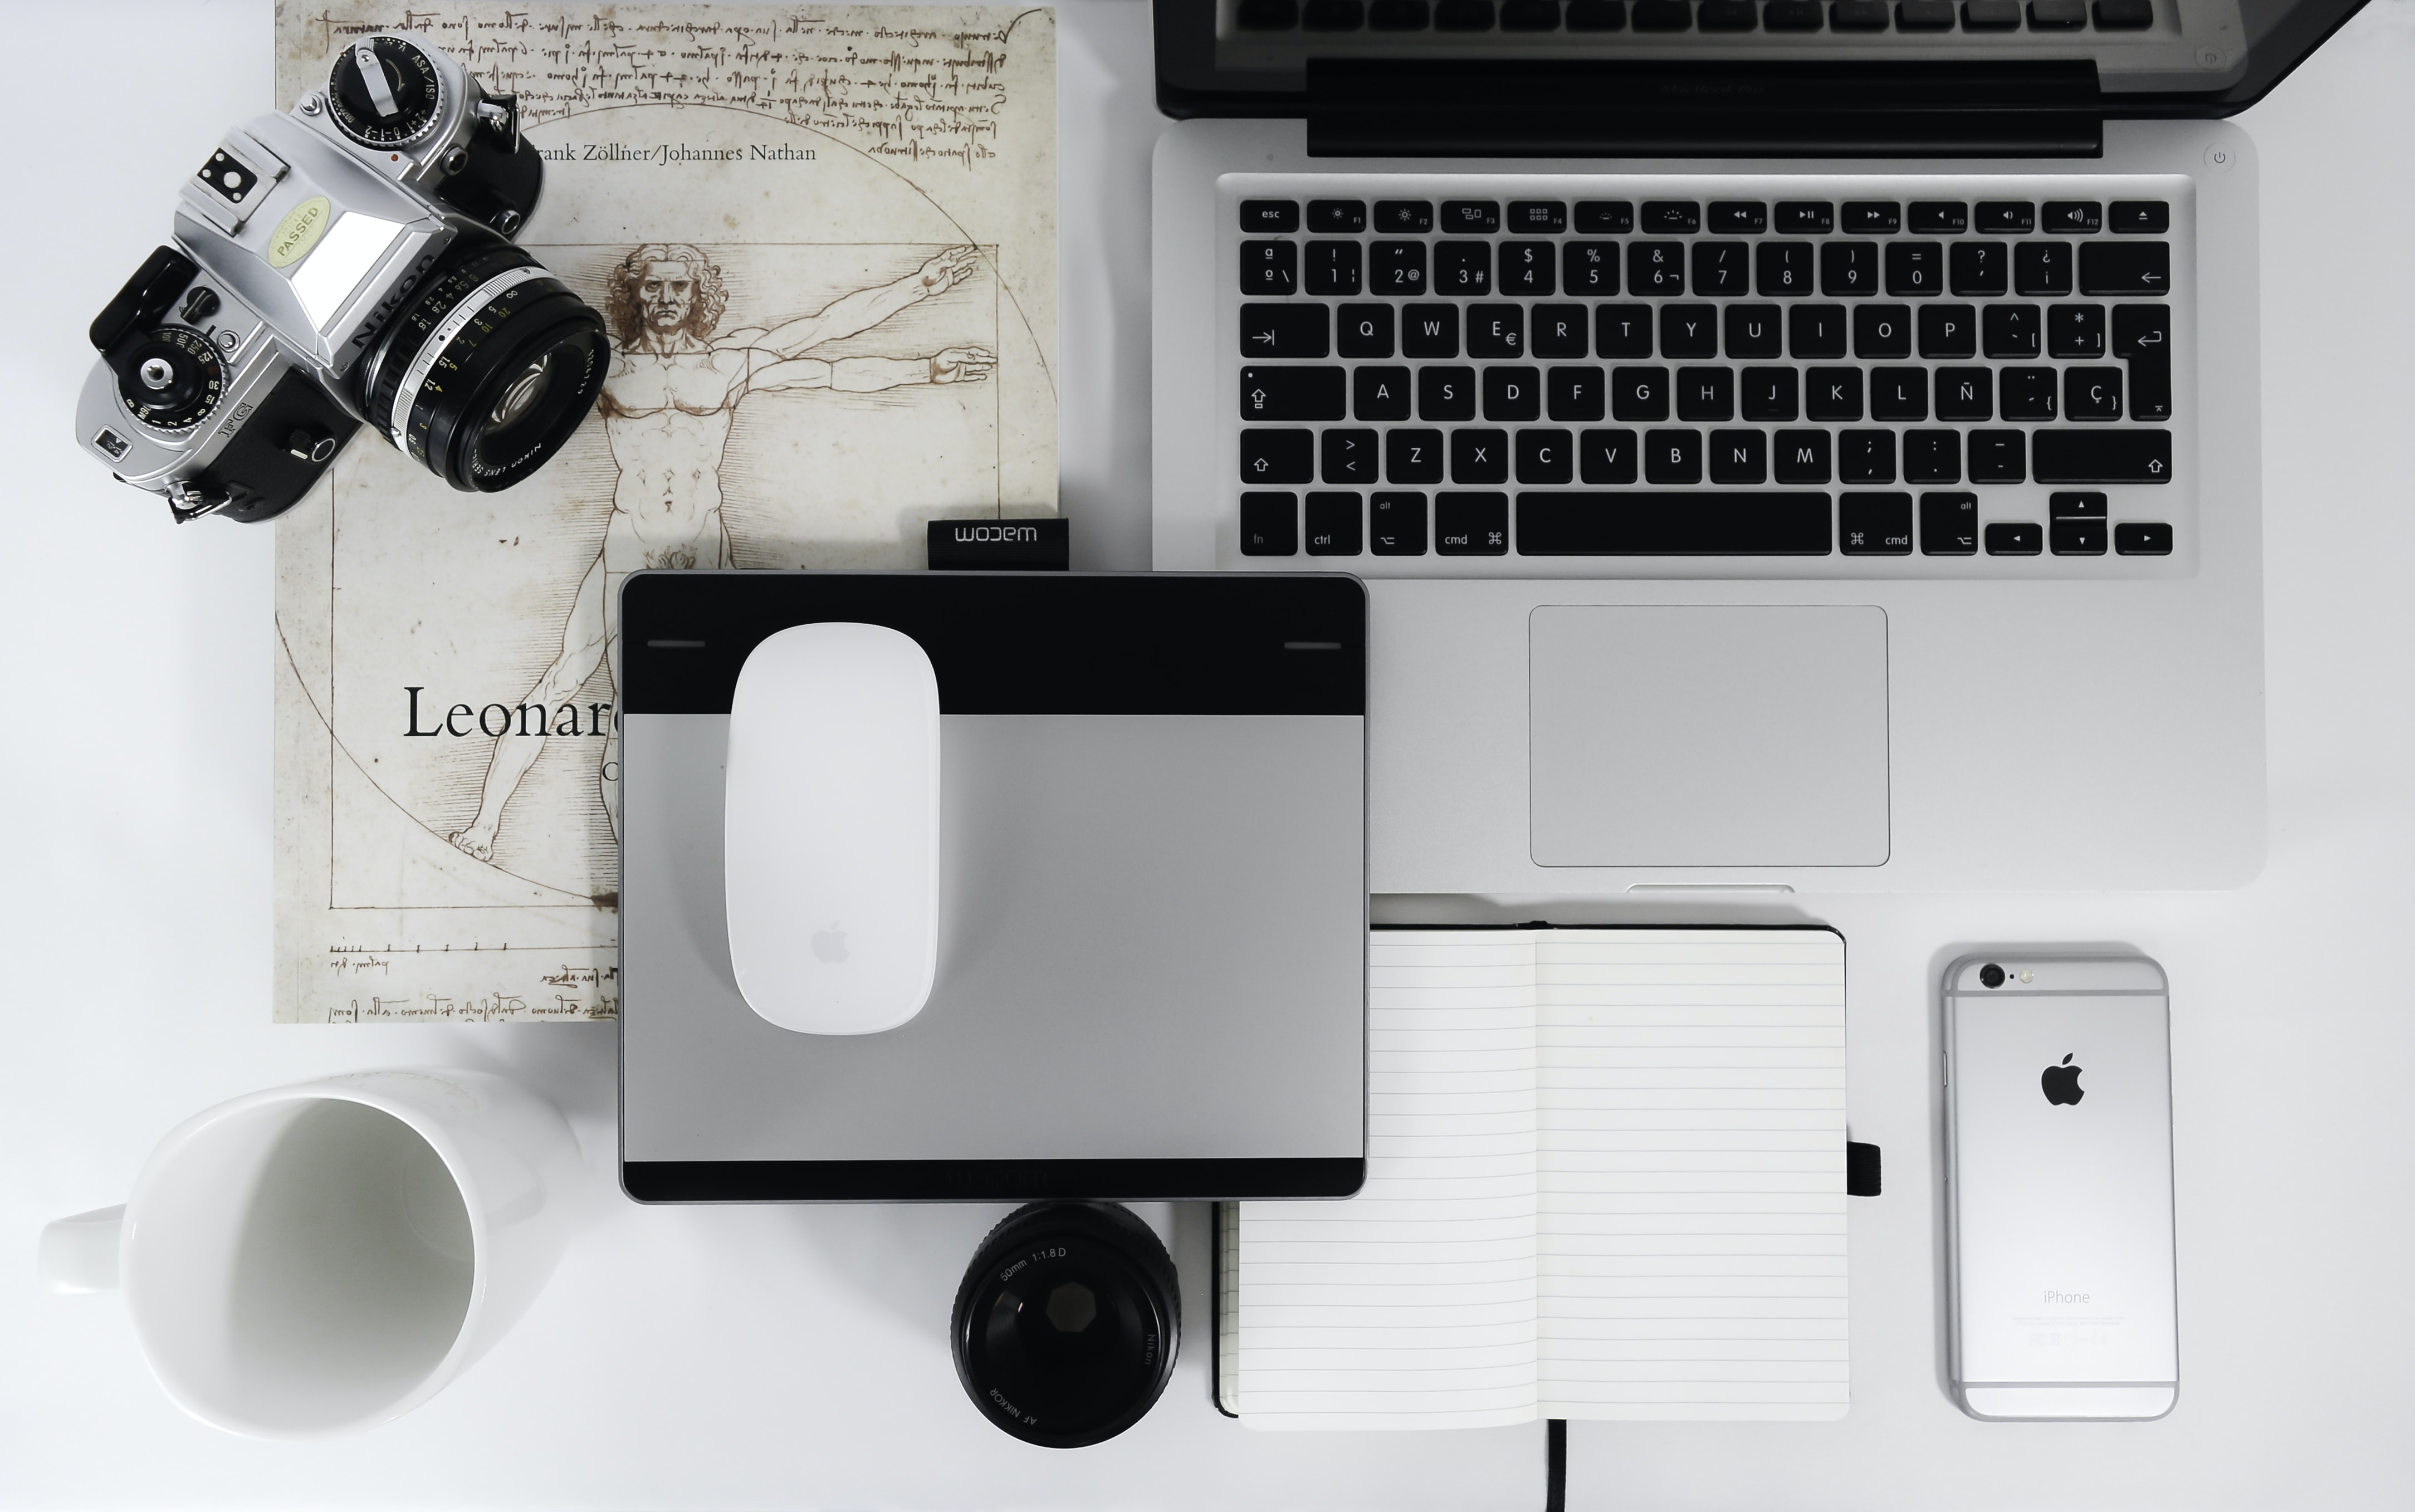 white Apple Magic Mouse, gray trackpad, gray SLR camera, space gray iPhone 6s, and MacBook Pro on table